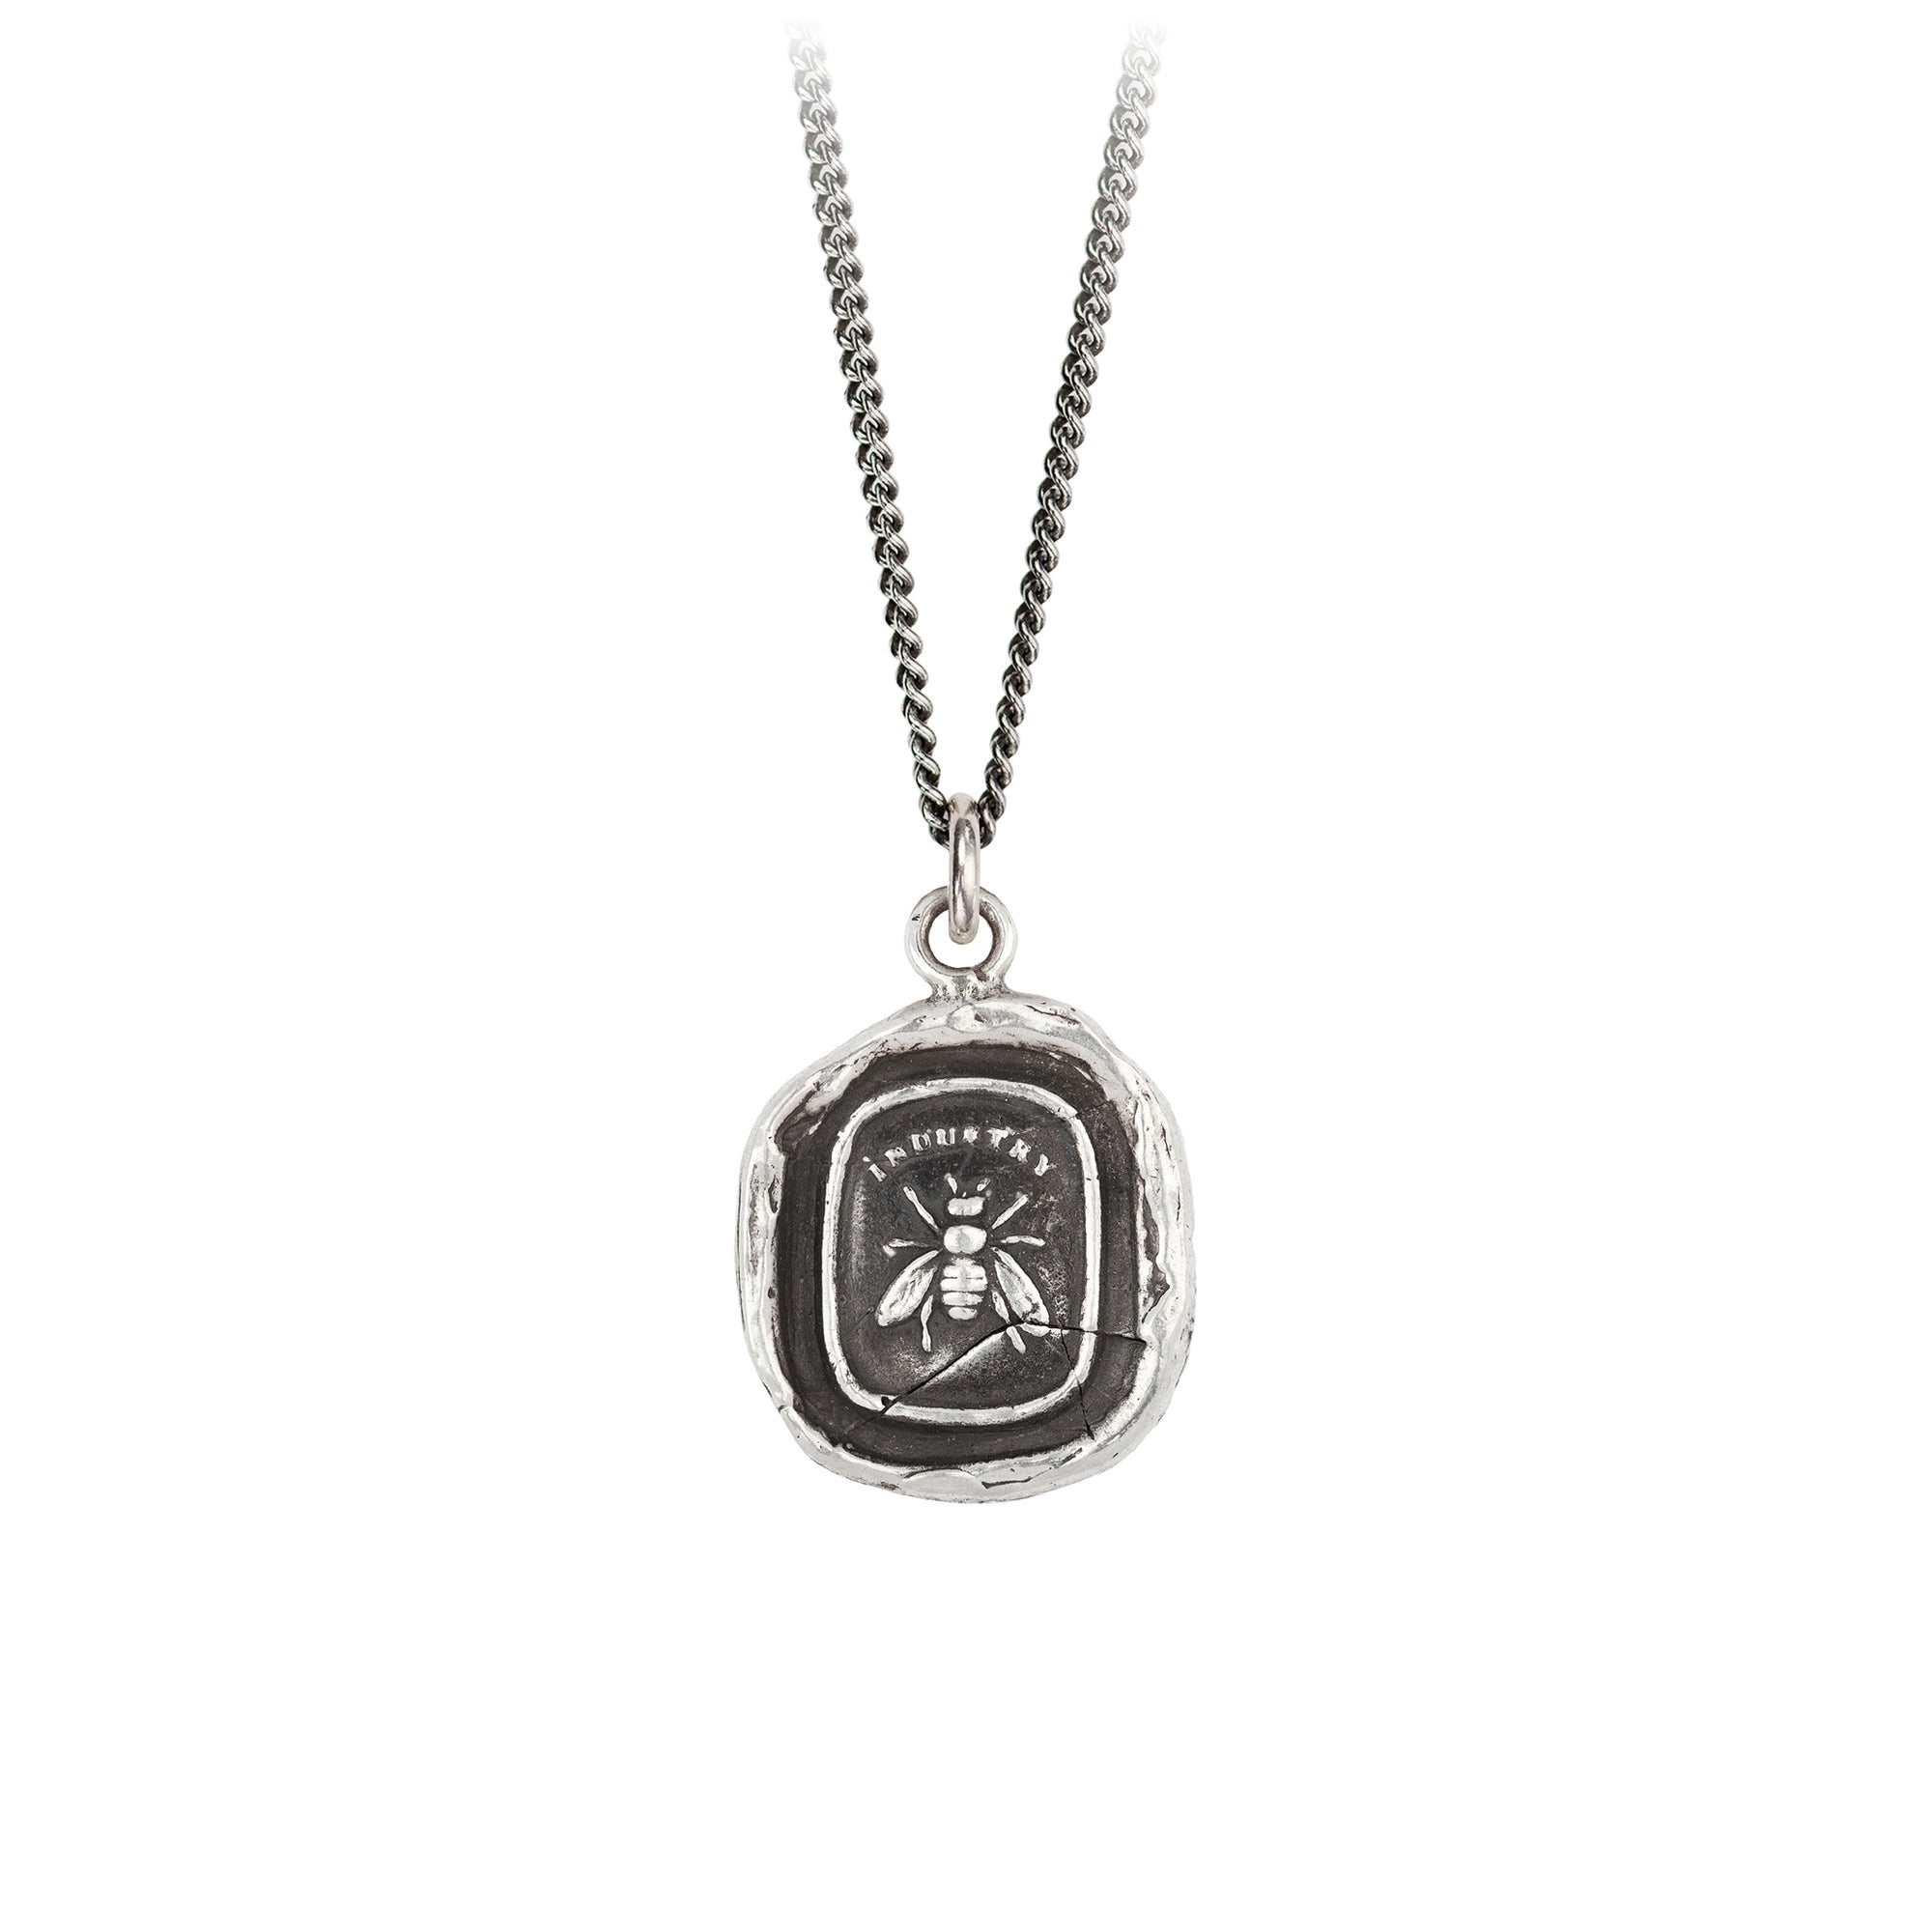 Pyrrha Dedication Talisman Necklace Fine Curb Chain Silver